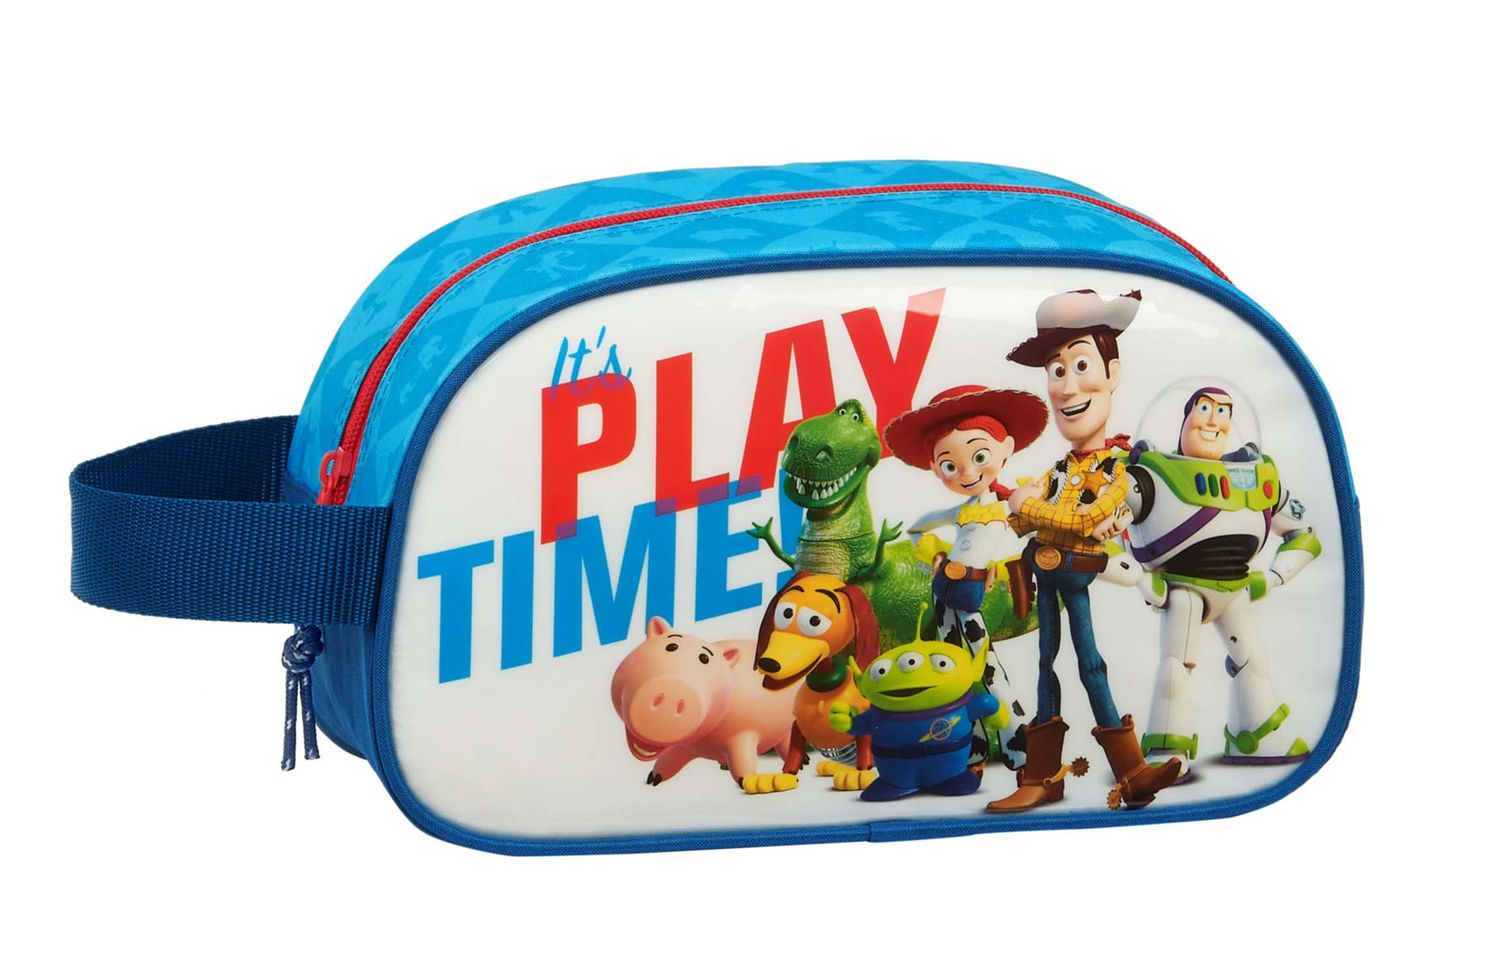 TOY STORY 4 PLAY TIME Toiletry Travel Bag – image 1